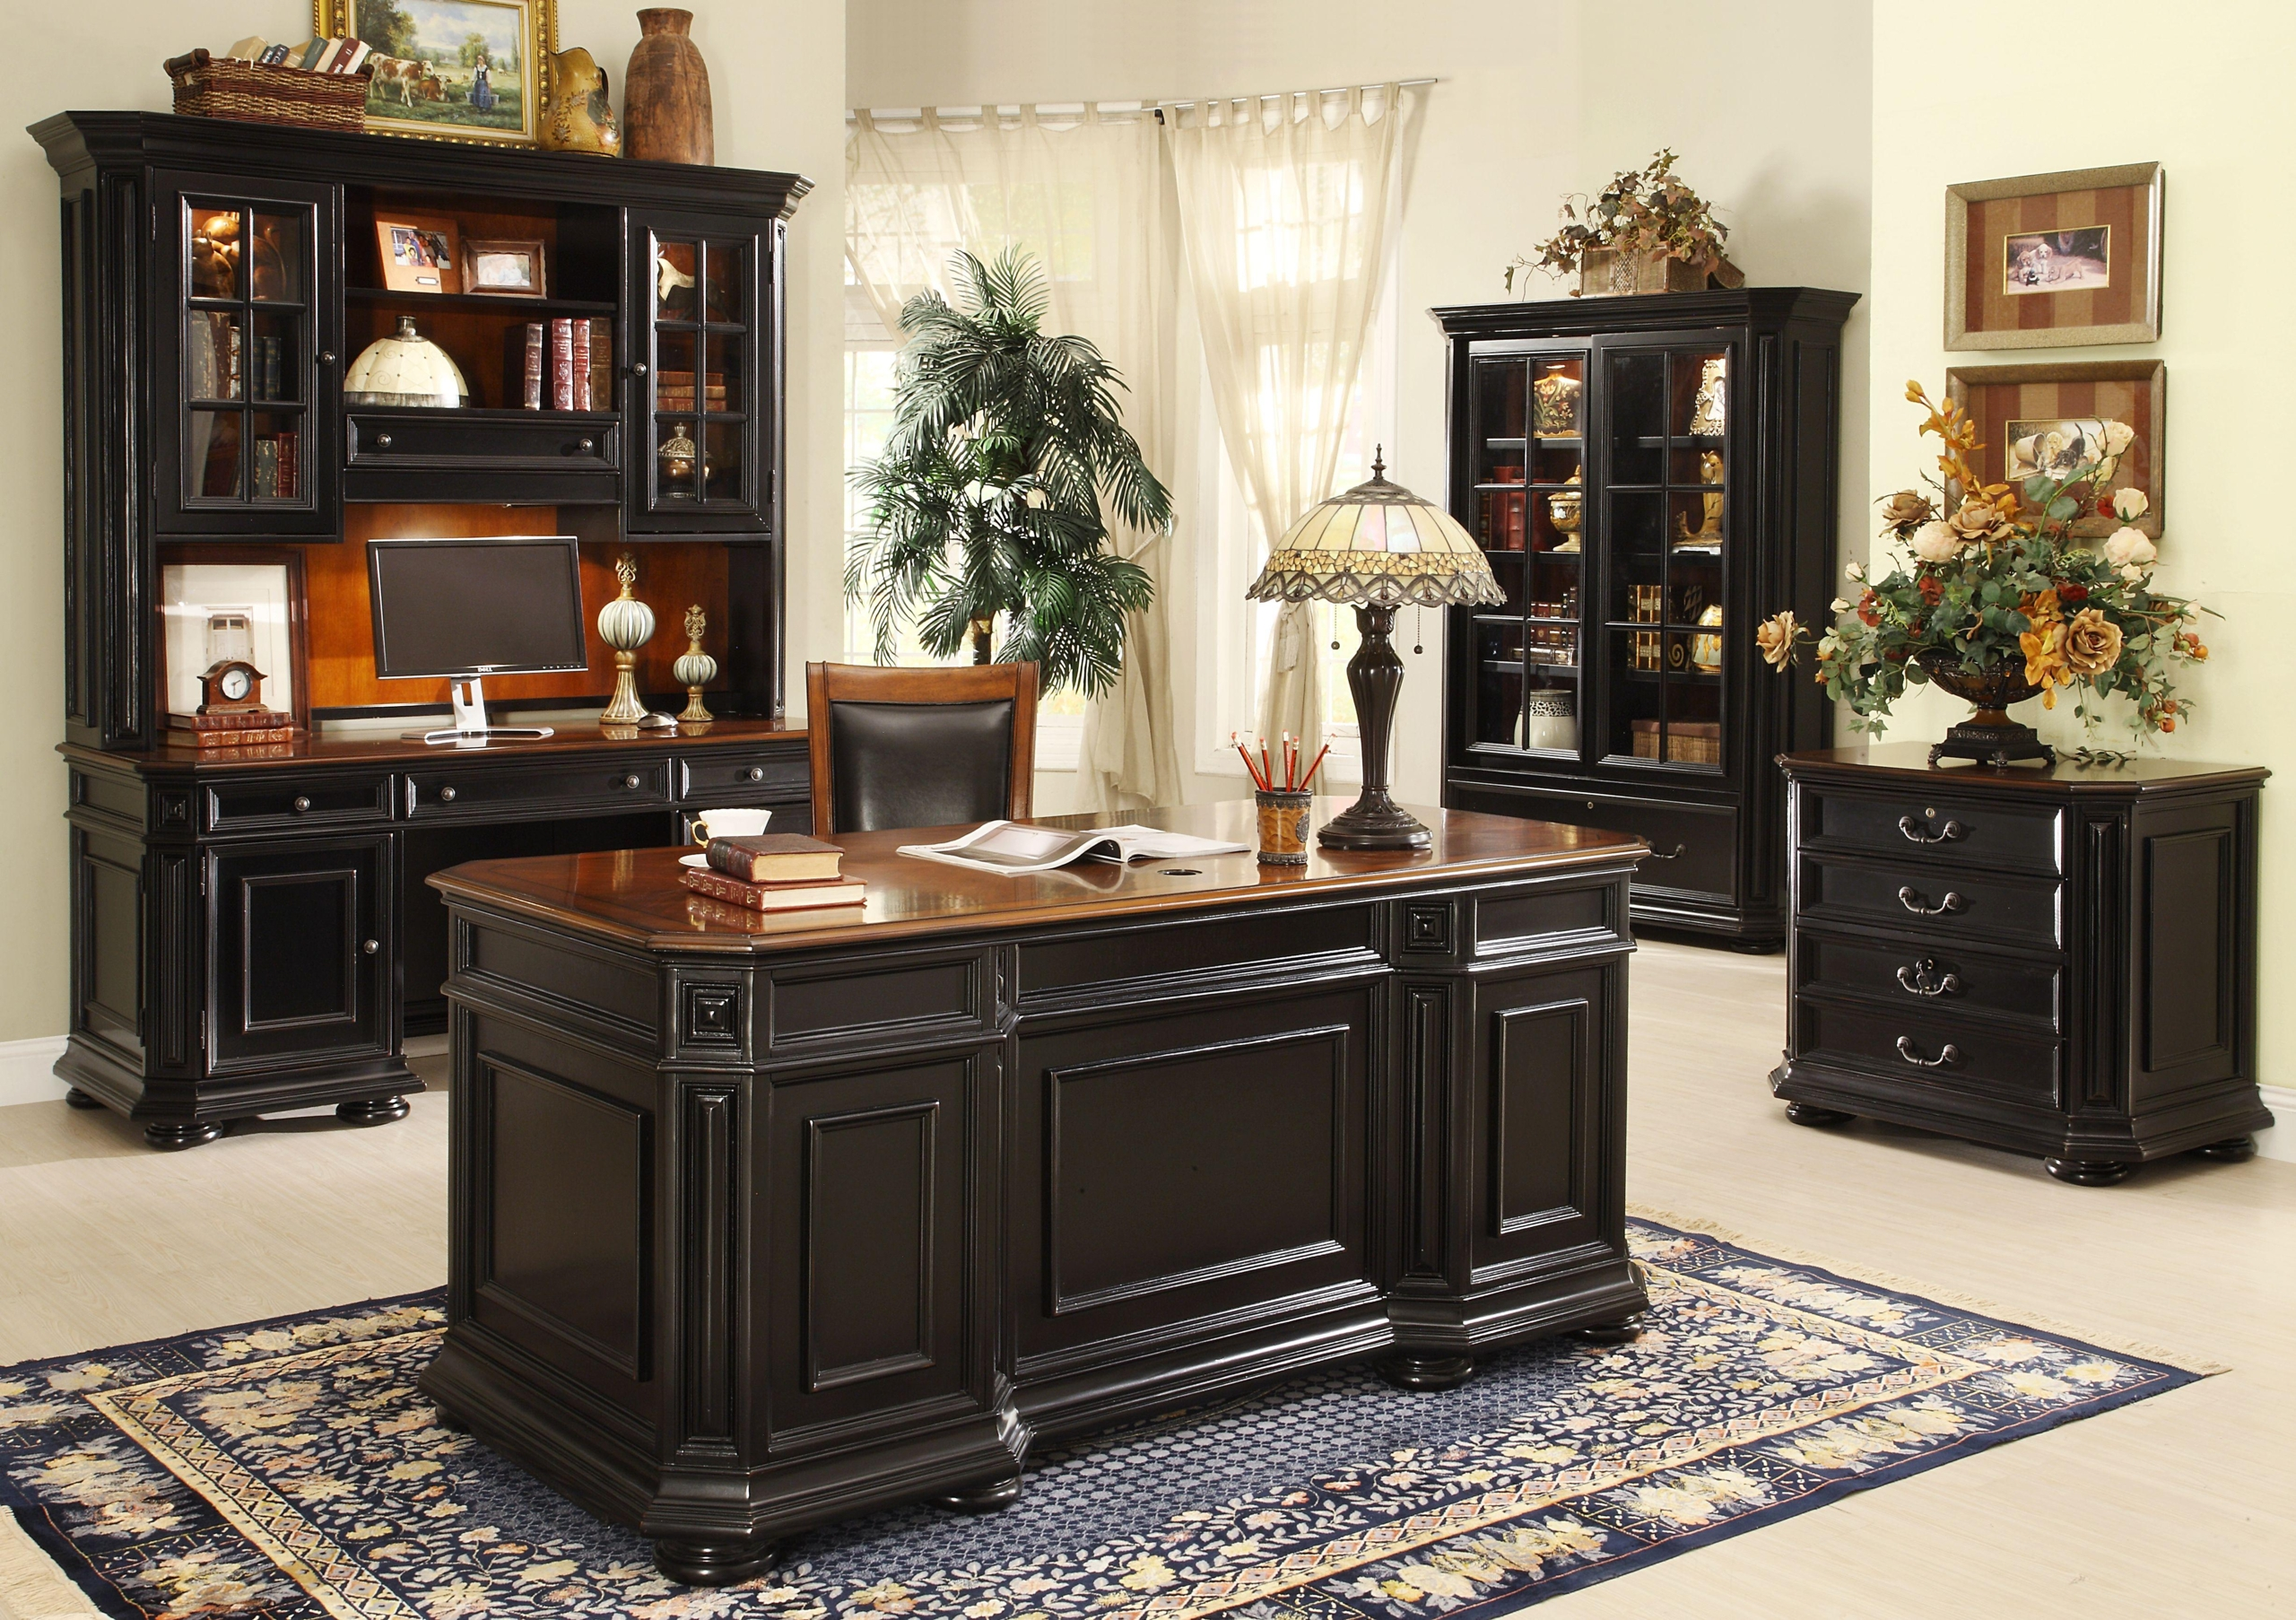 Charmant Executive Home Office Furniture Sets   Foter